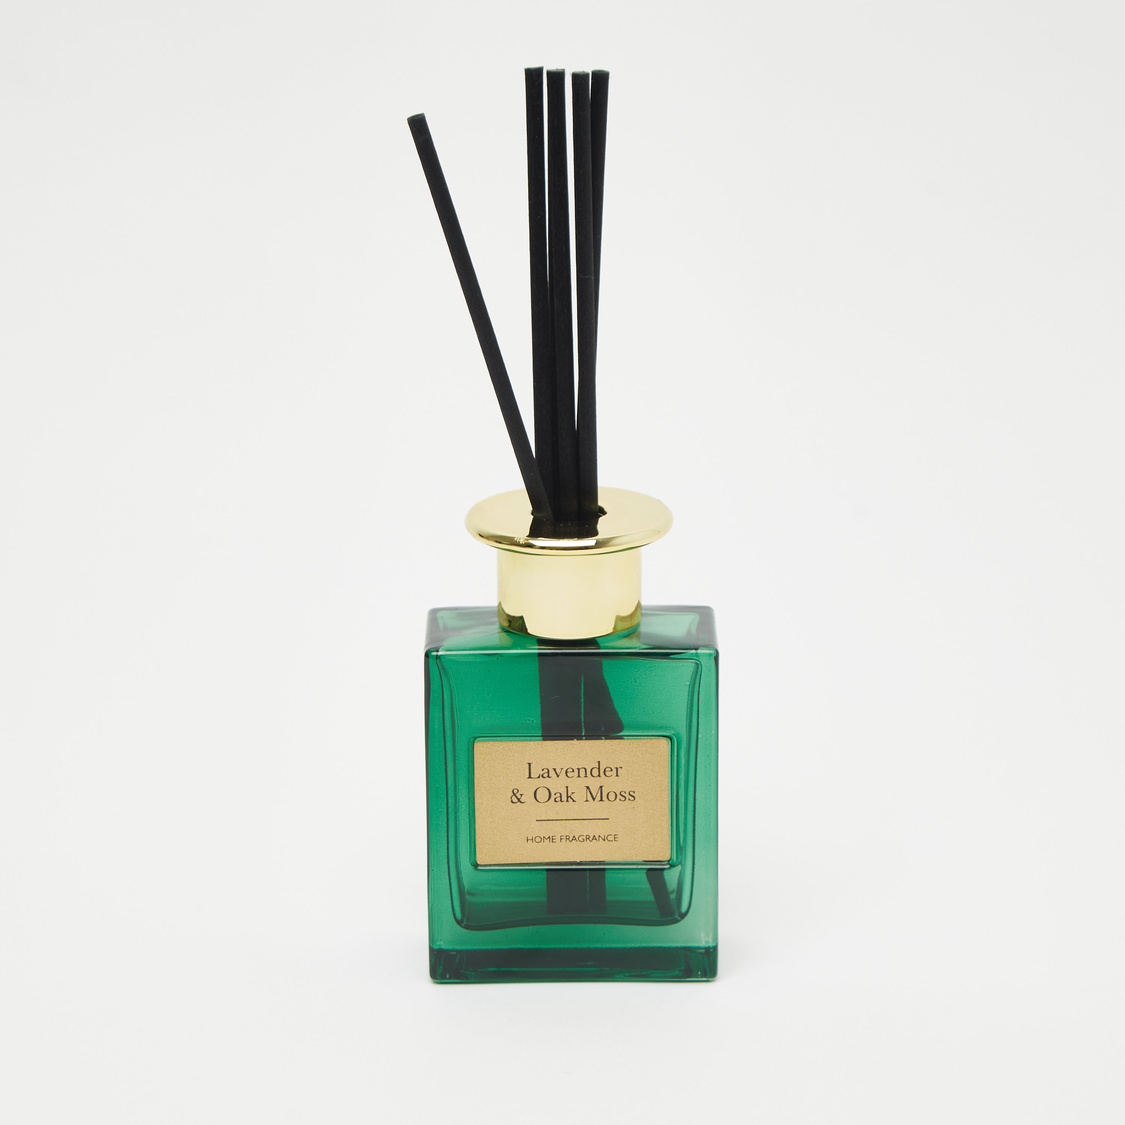 Lavender and Oak Moss Reed Diffuser - 7x4x10 cms